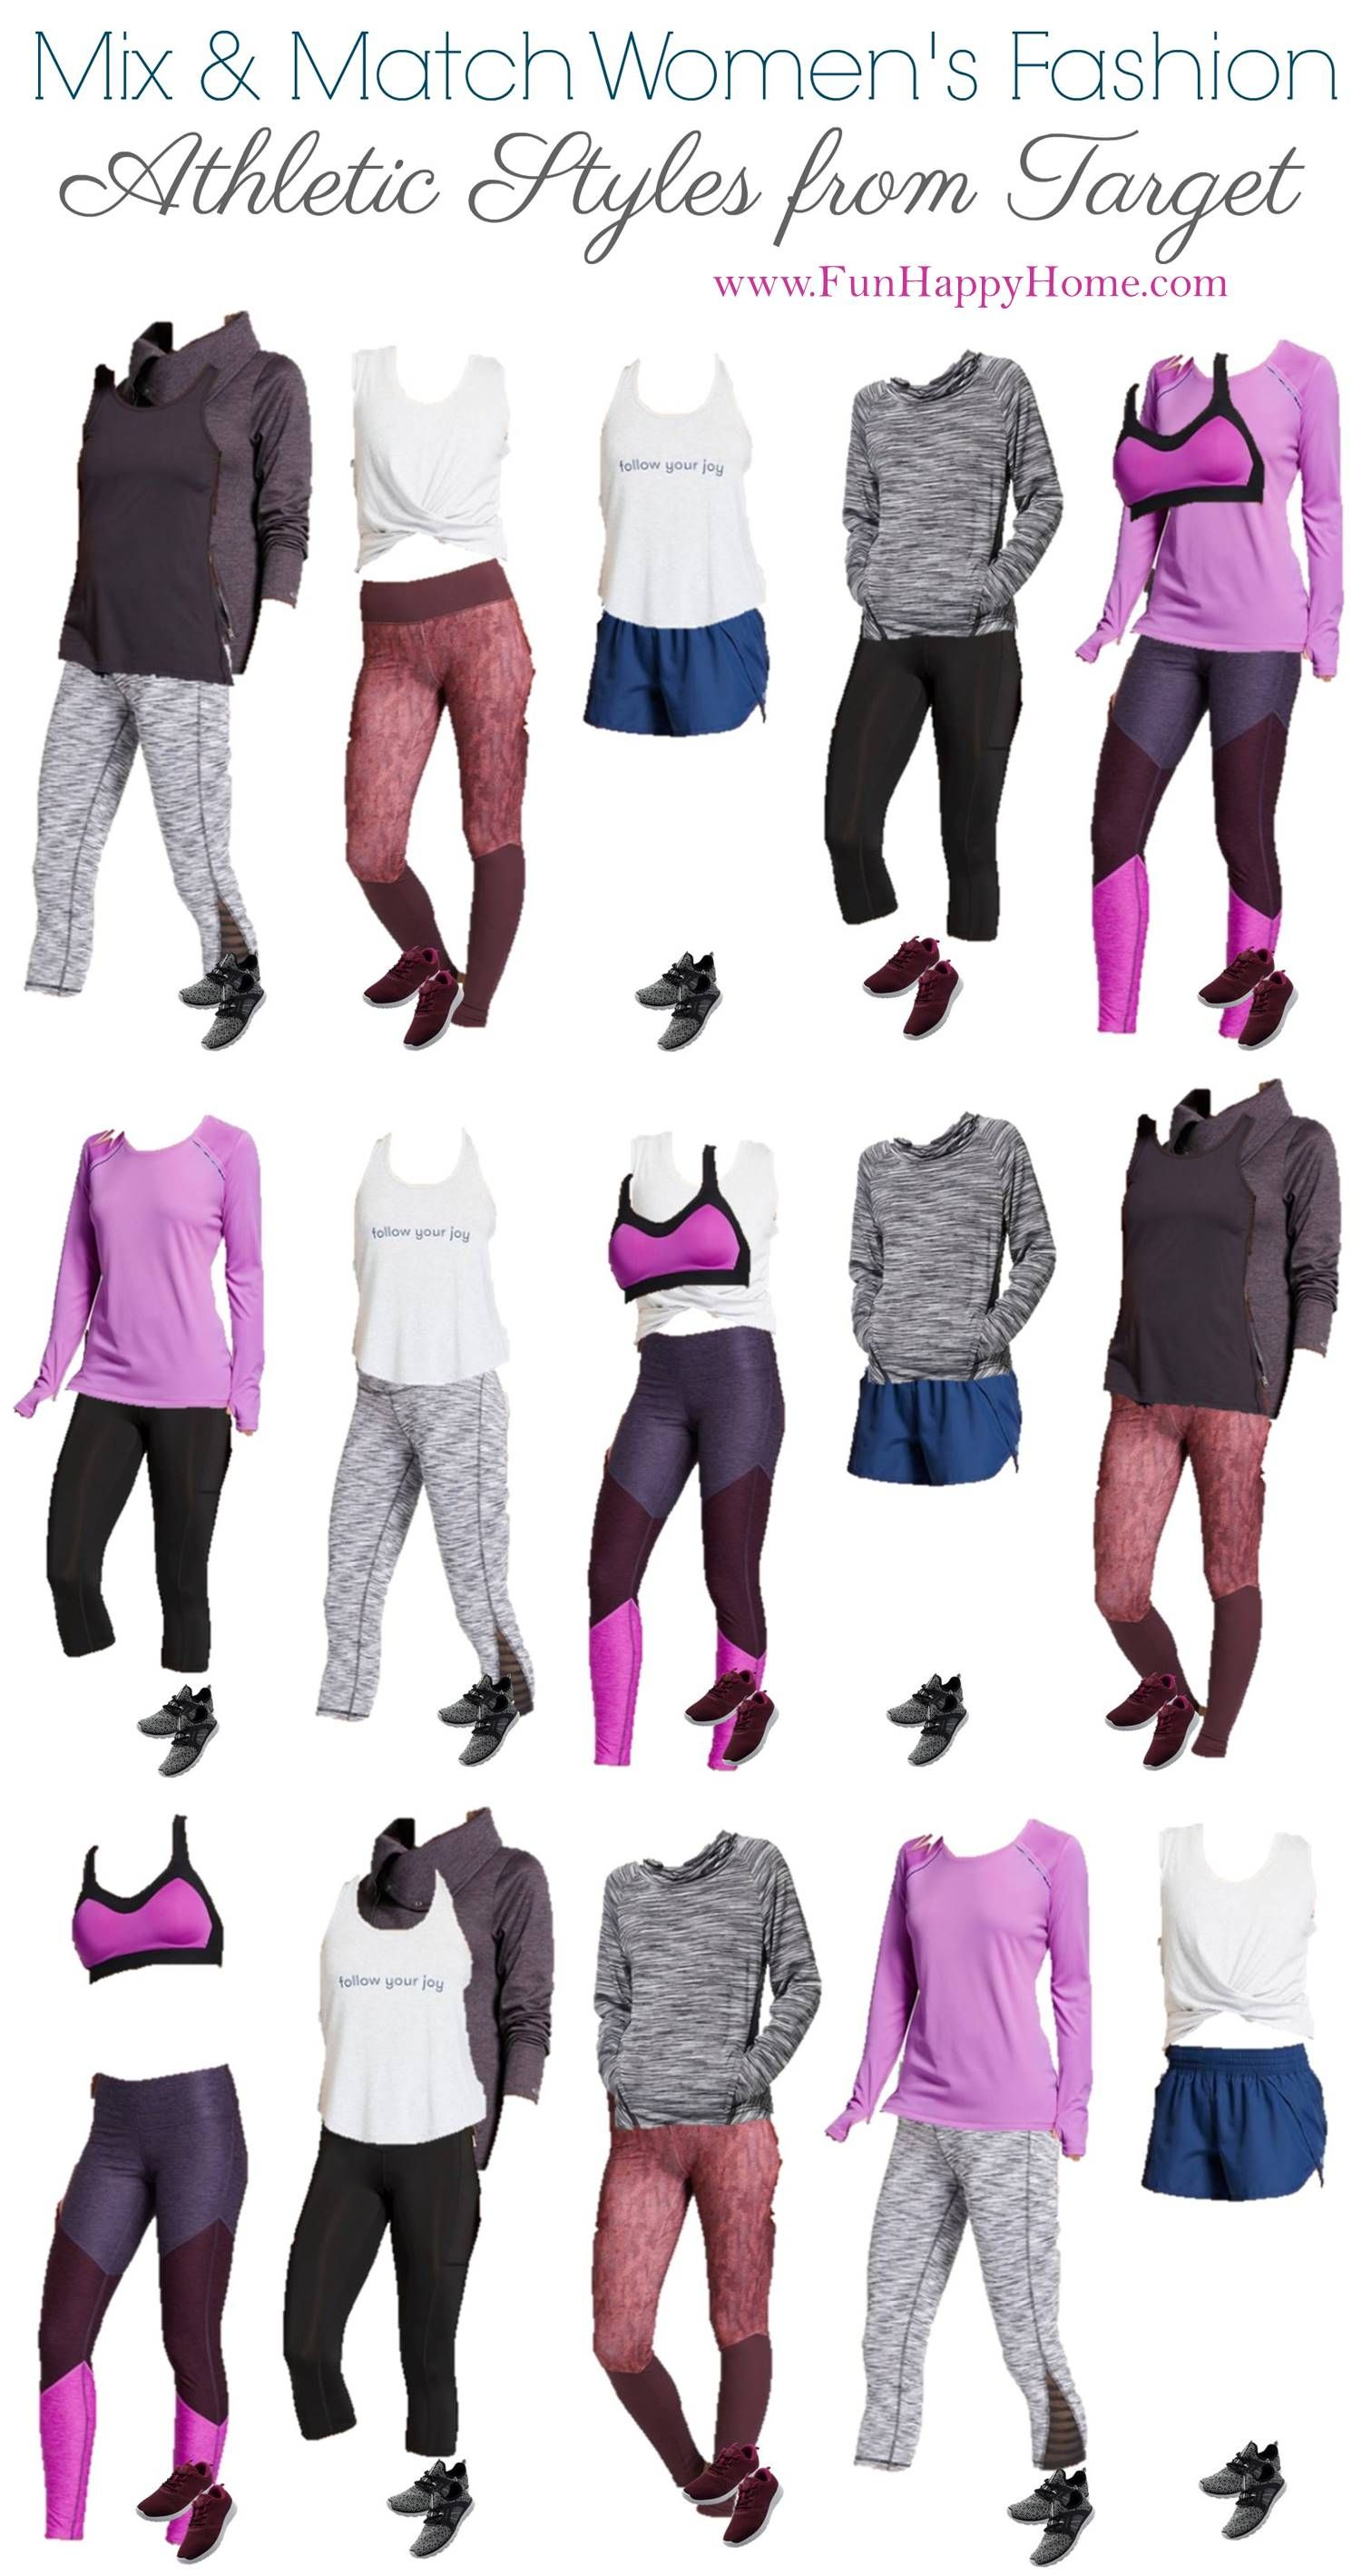 5307eff2127 Cute Workout Clothes  Mix   Match Workout Clothing